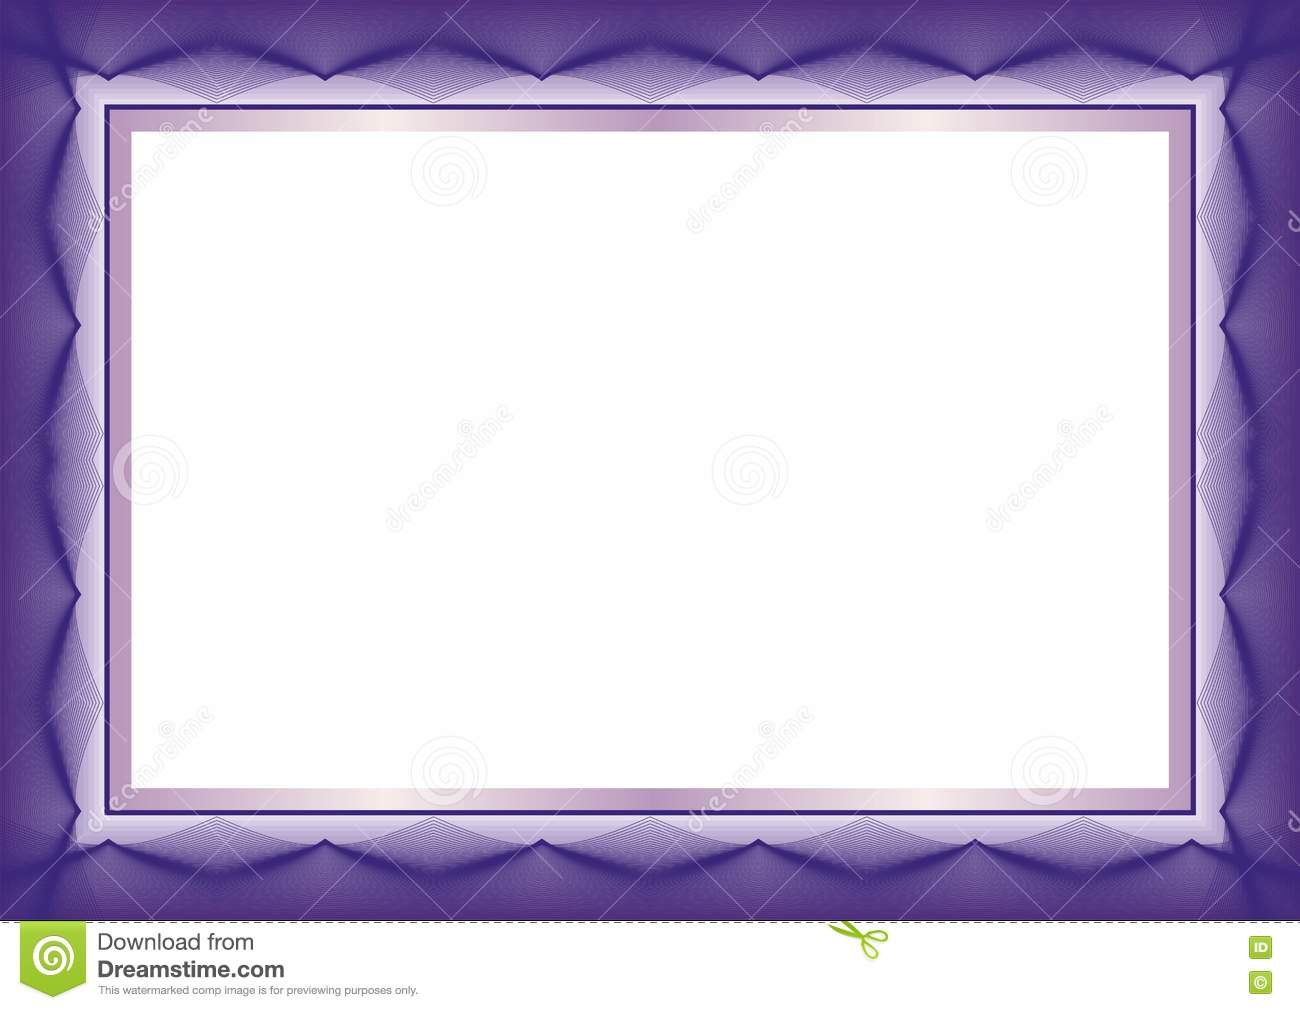 purple certificate or diploma template frame border - Certificate Border Design Templates